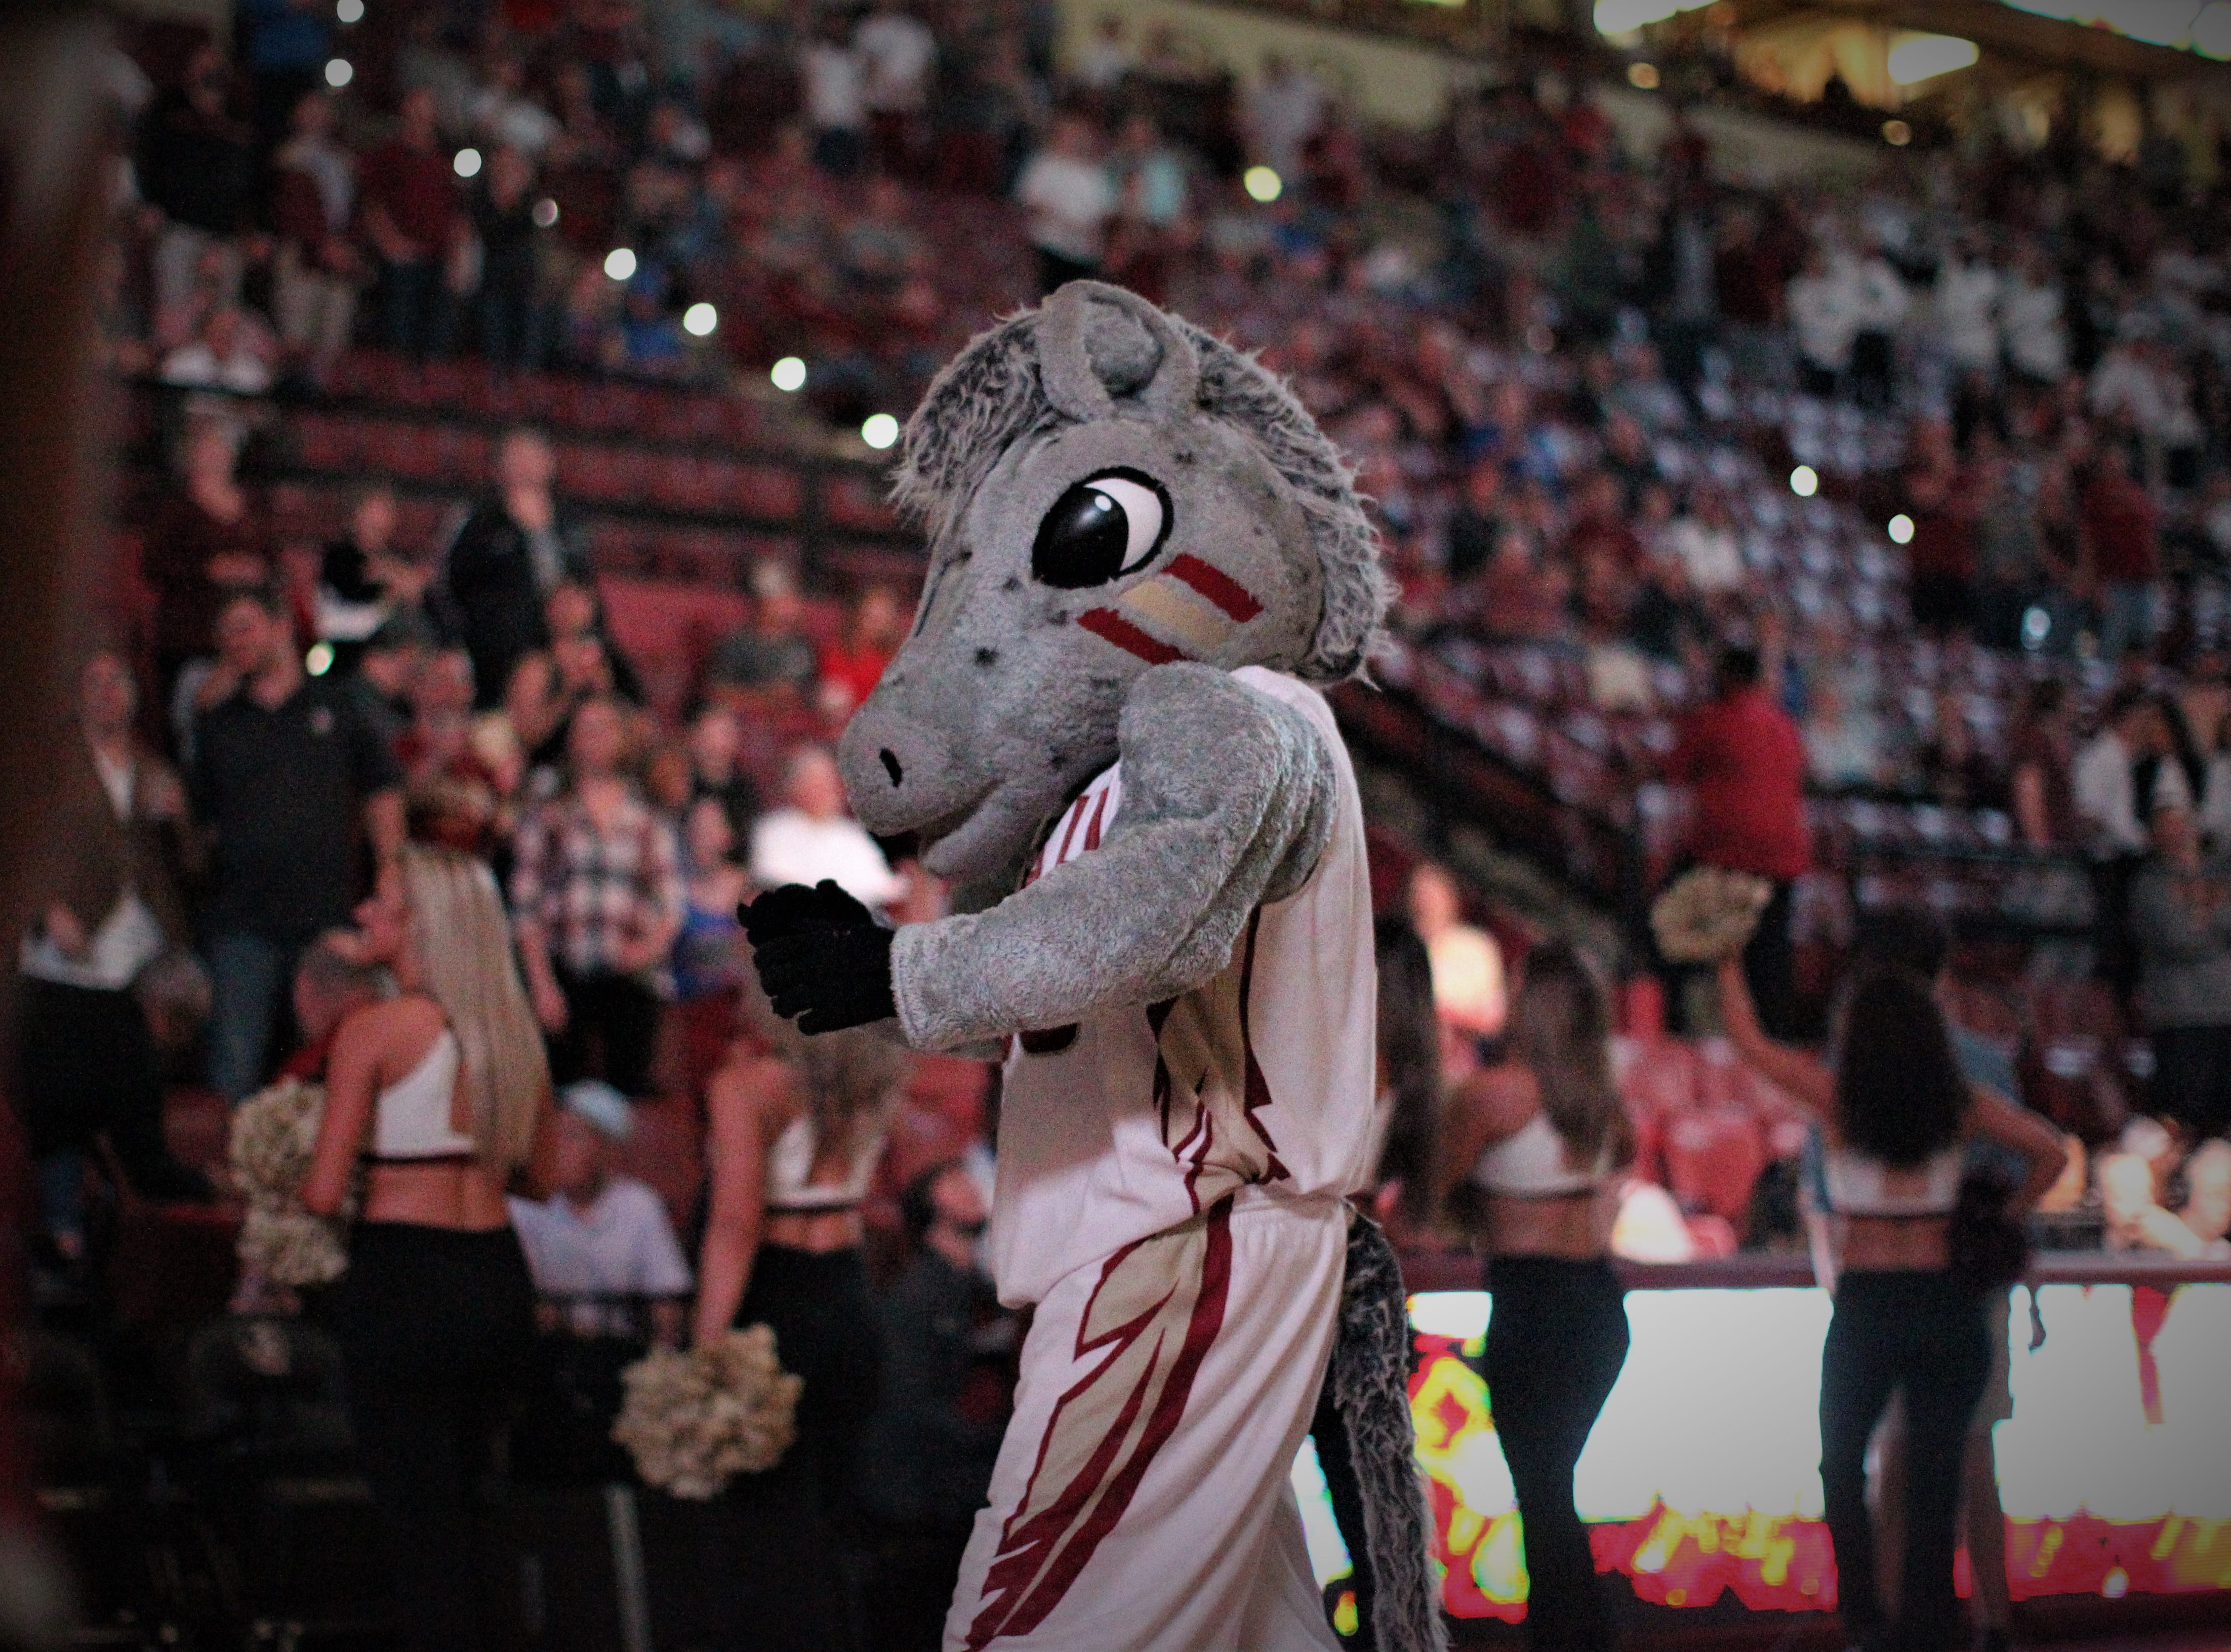 FSU mascot Cimeron during the Sunshine Showdown game against Florida on Tuesday at the Tucker Civic Center.